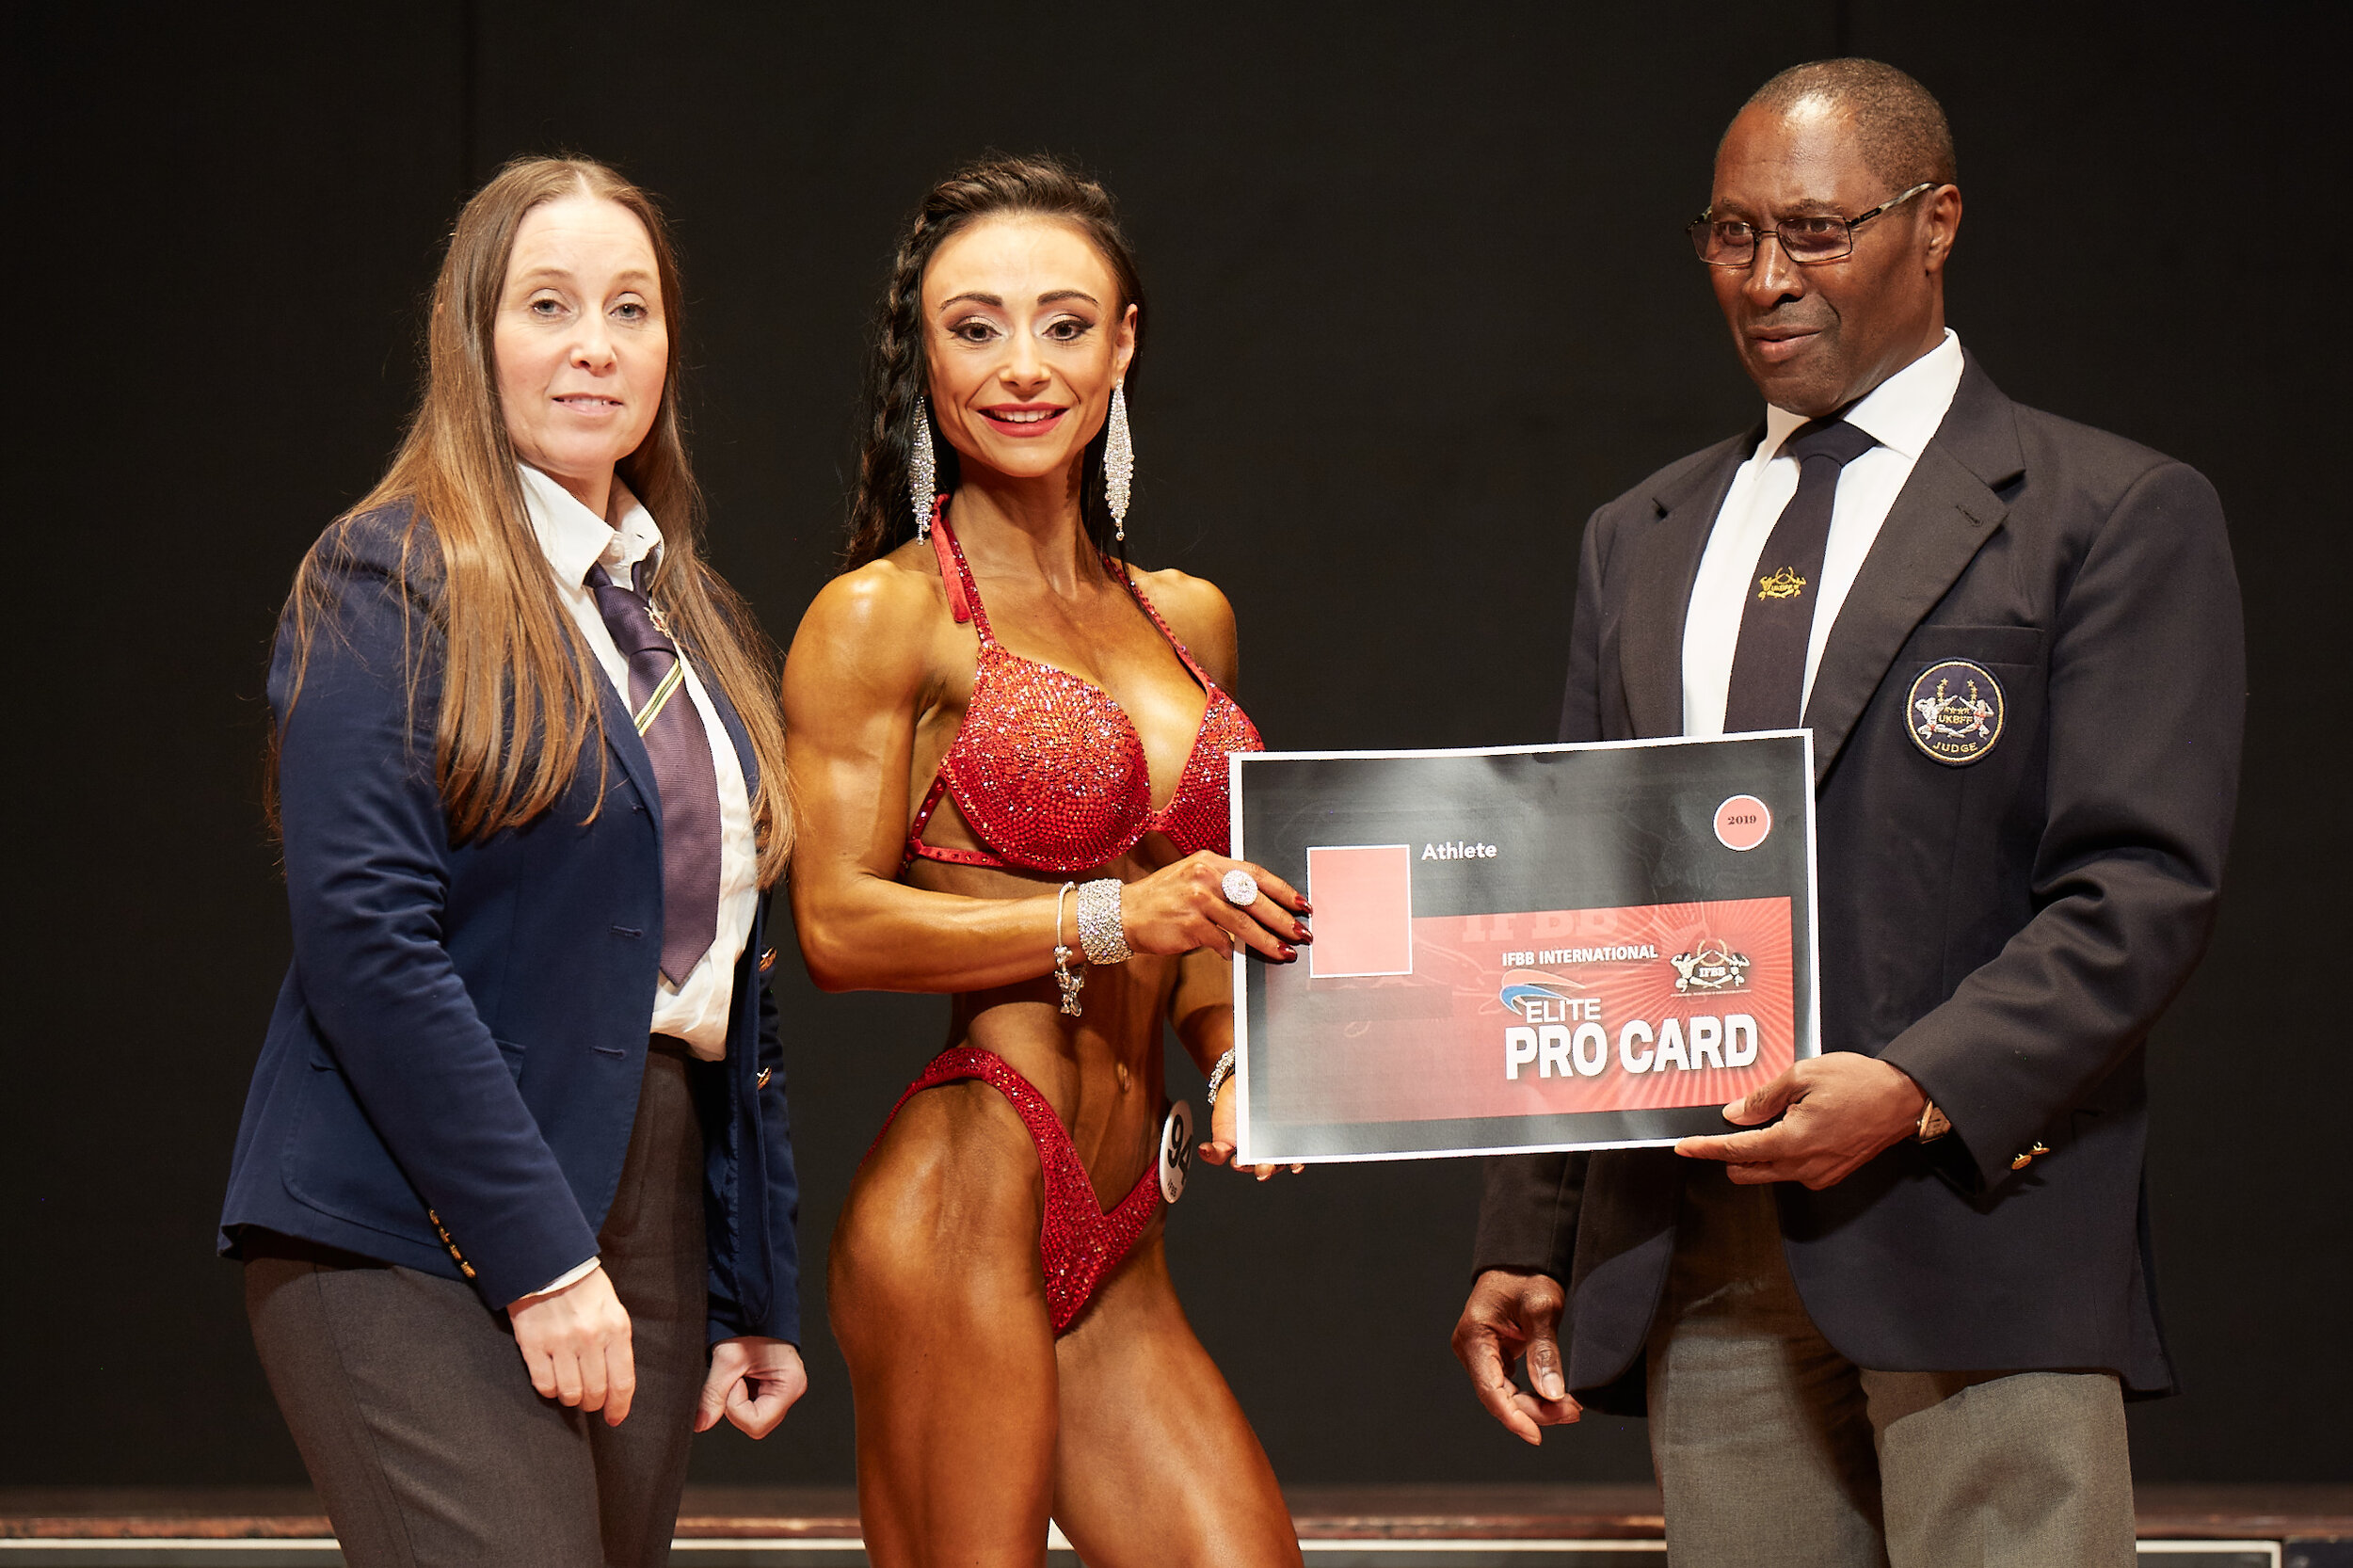 Chloe Greenwood receives her IFBB Elite Pro card after winning bodyfitness overall.